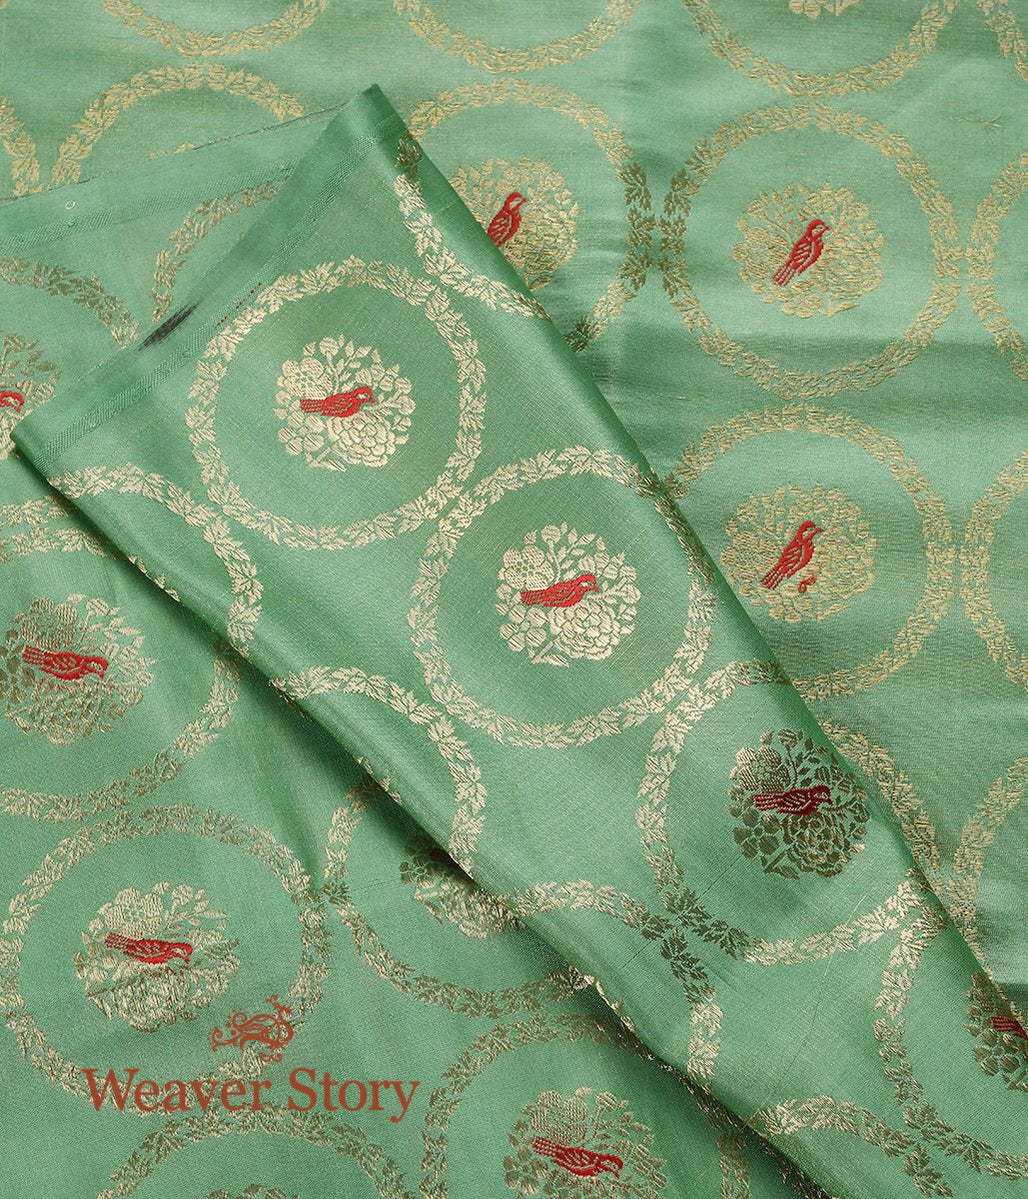 Handwoven Green Pure Satin Fabric with Bird Motifs